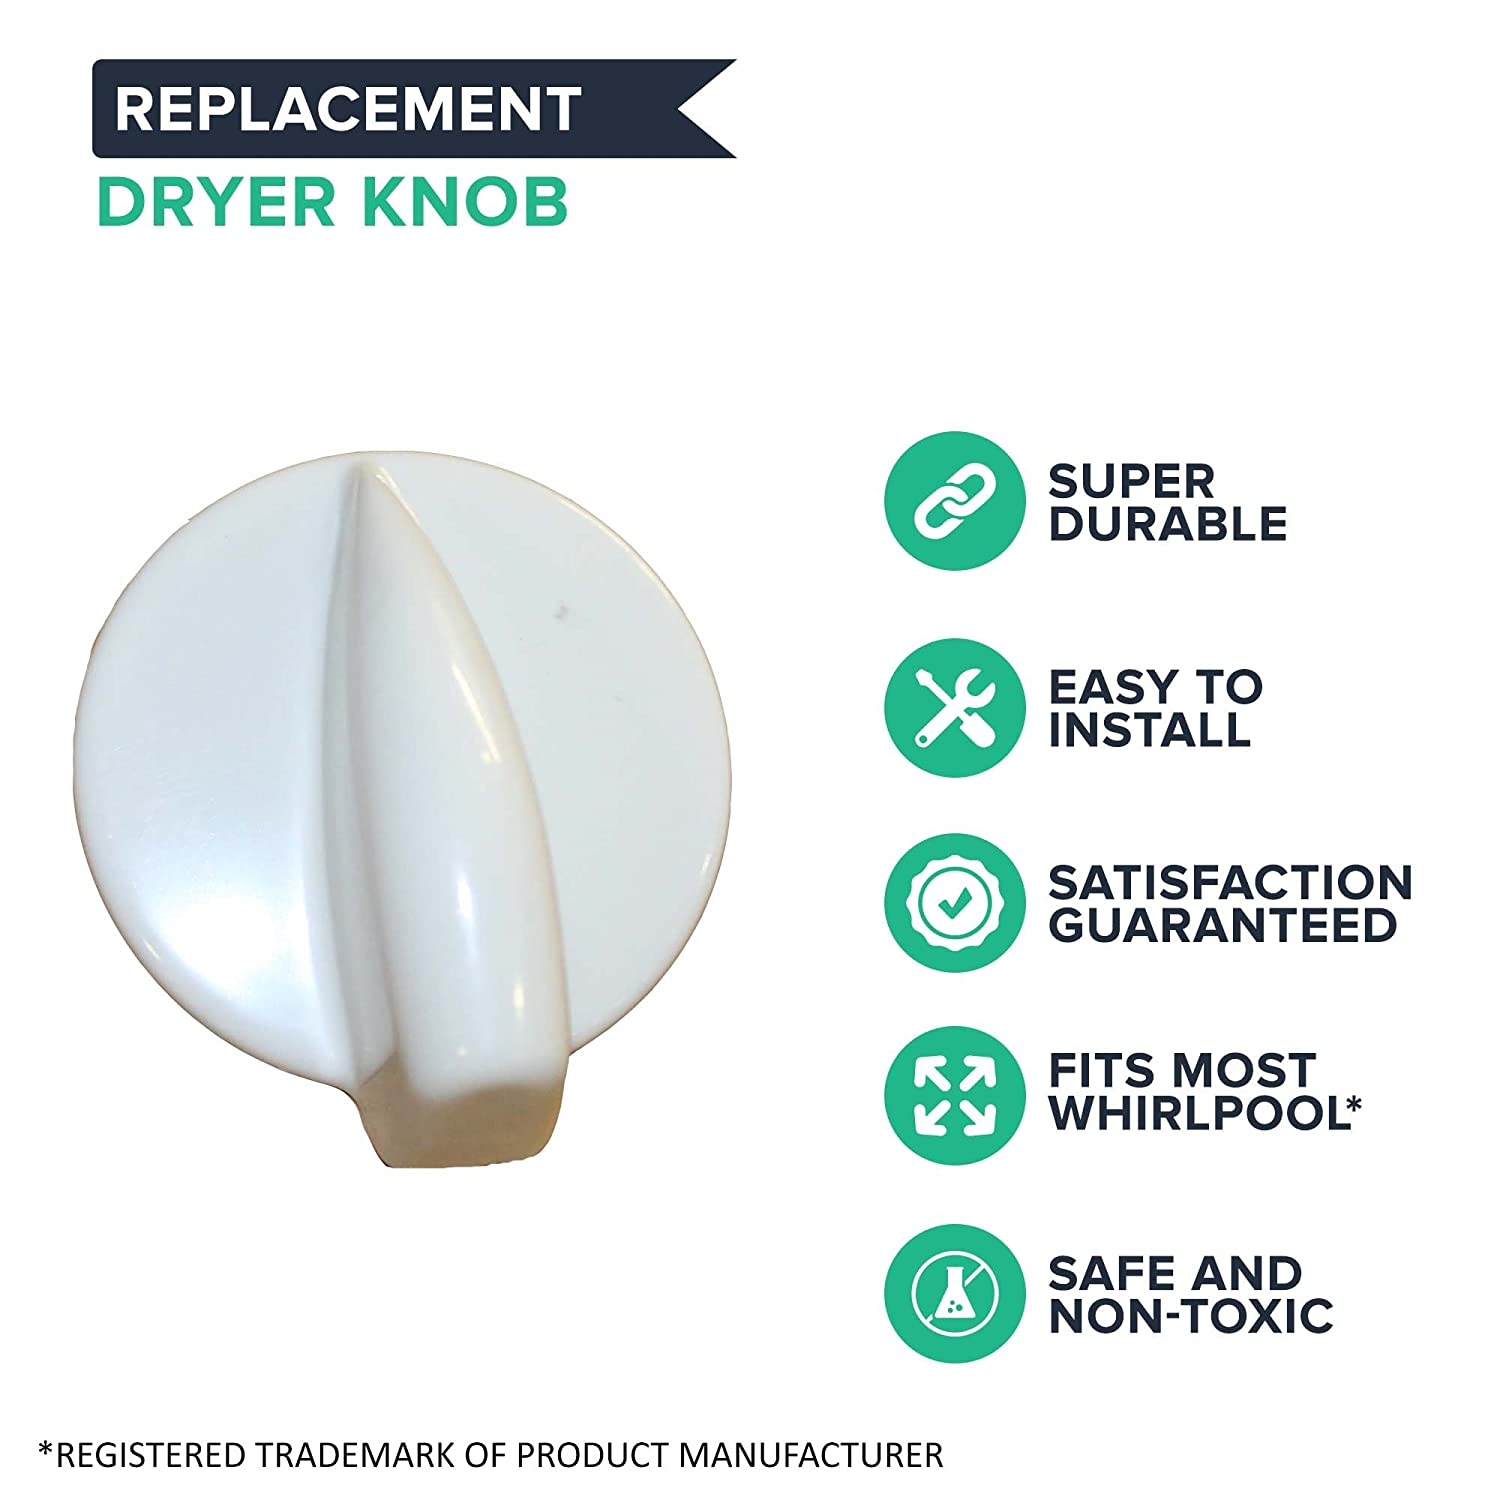 Compatible with Part 8181859 7MGHW9150PW0 7MGHW9400PW0 GHW9100LQ0 Think Crucial Replacement Dryer Knob Fits Whirlpool